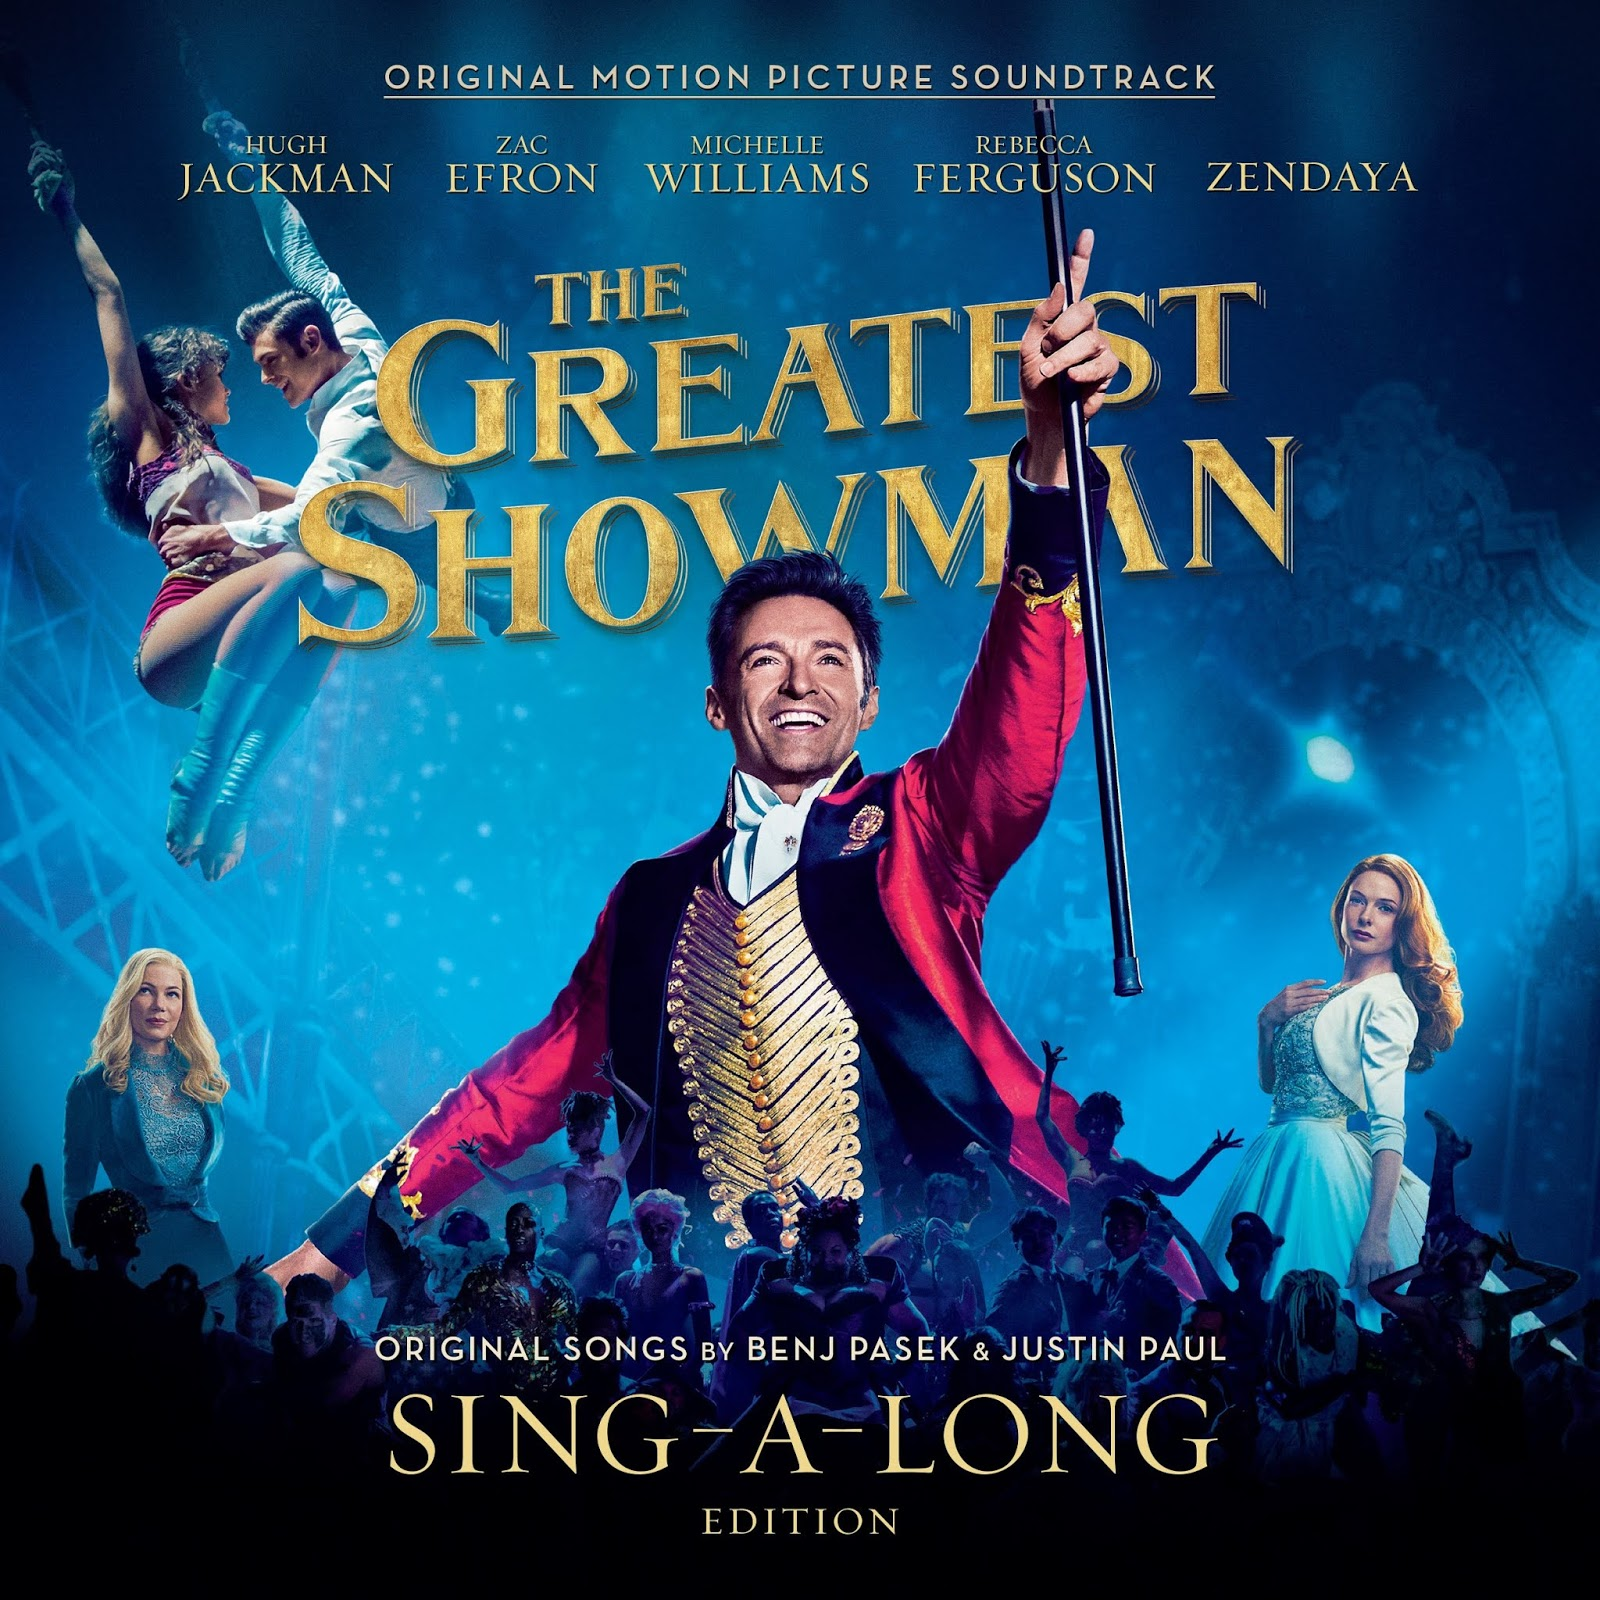 The Greatest Showman Reimagined Album Review The